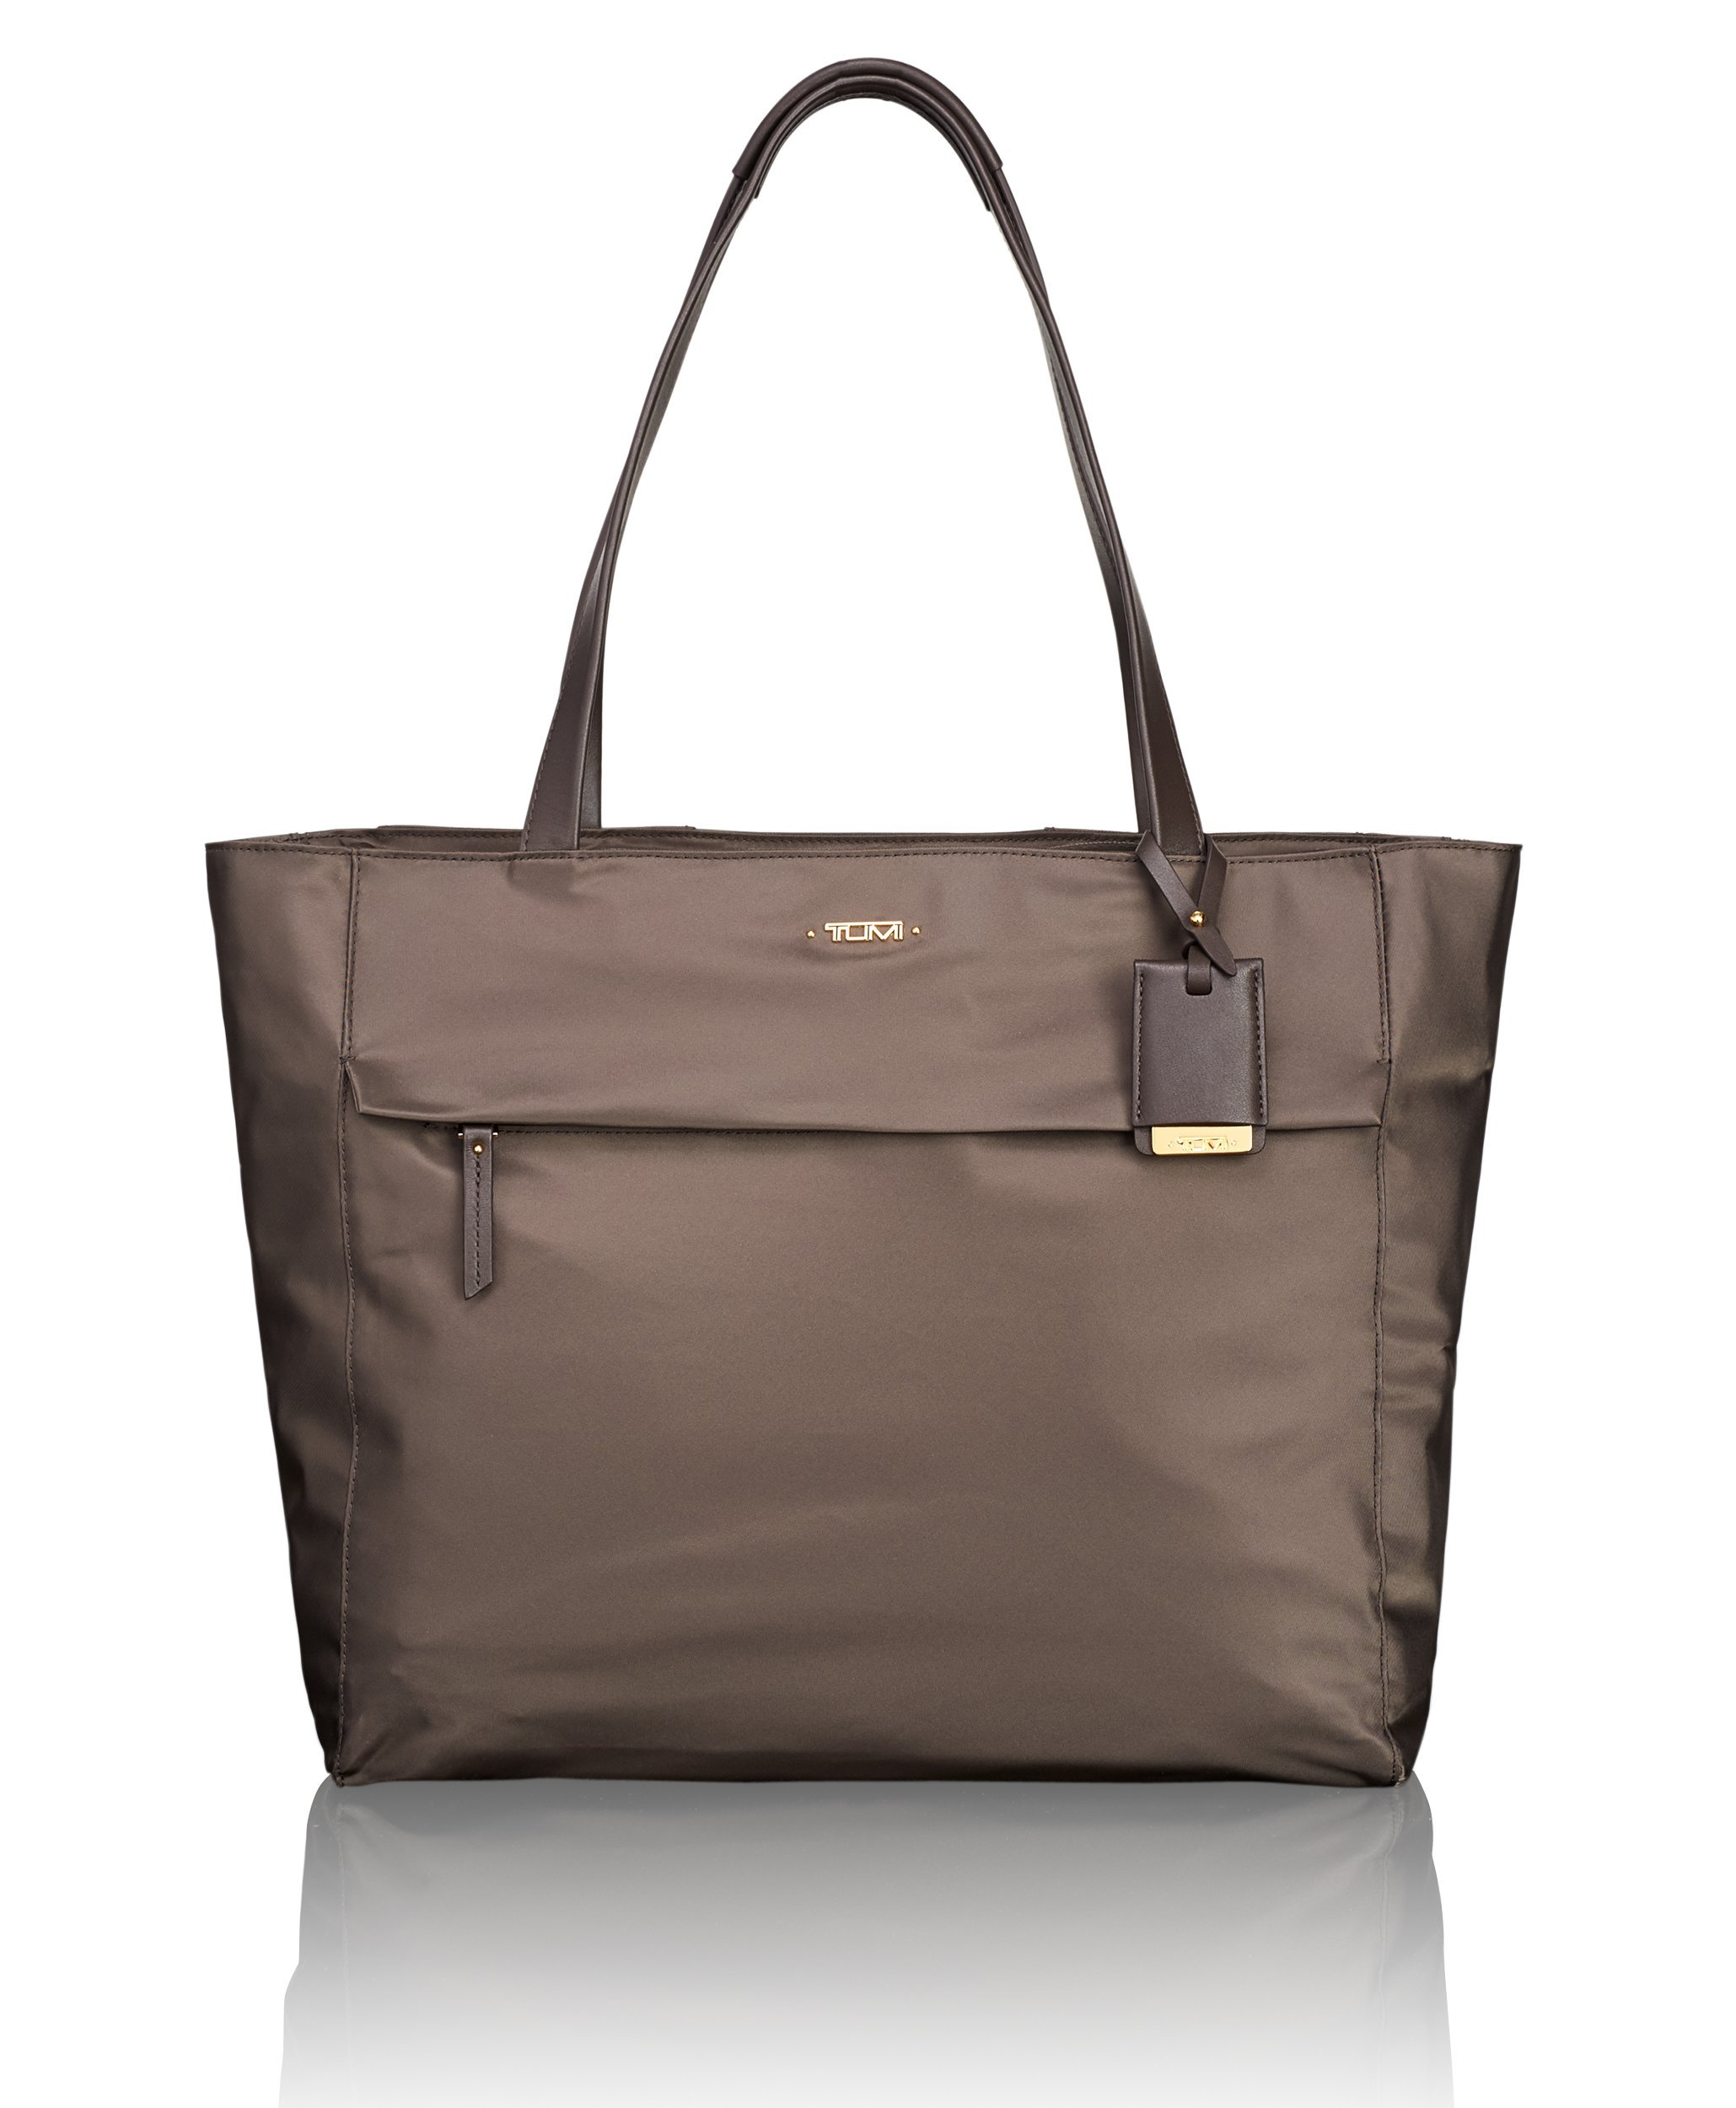 Tumi Women's Voyageur M-tote Travel Tote, Mink, One Size by Tumi